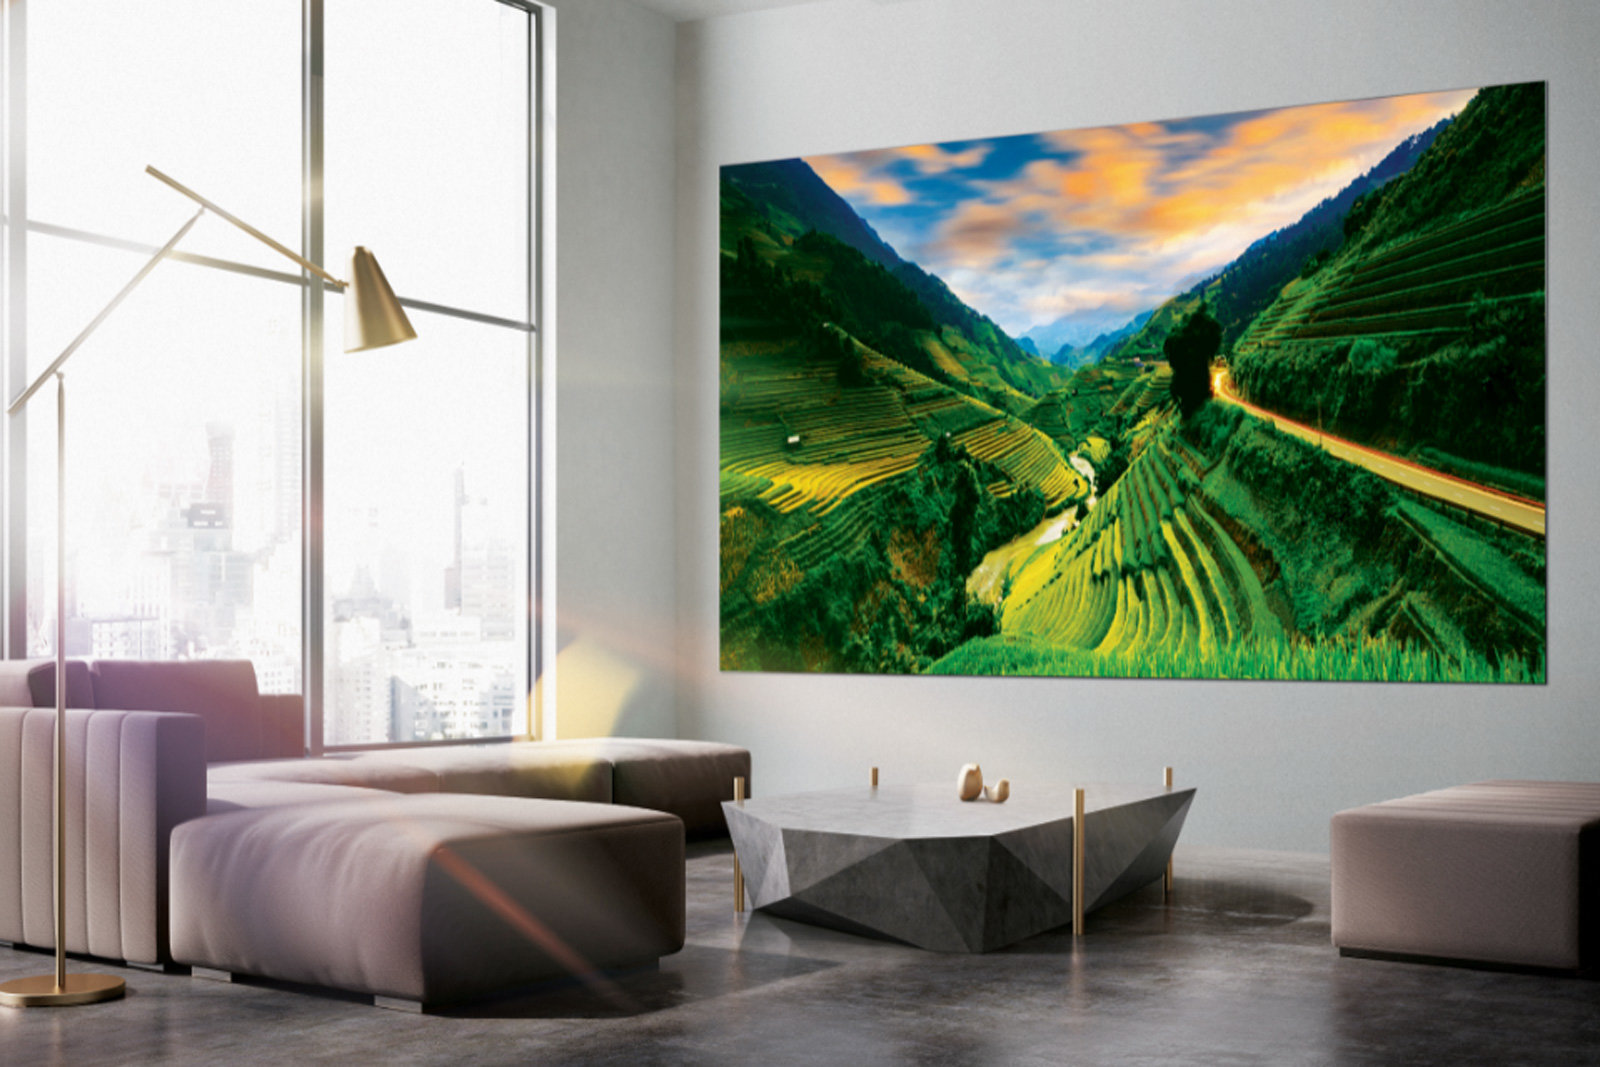 Samsung's The Wall television. Samsung